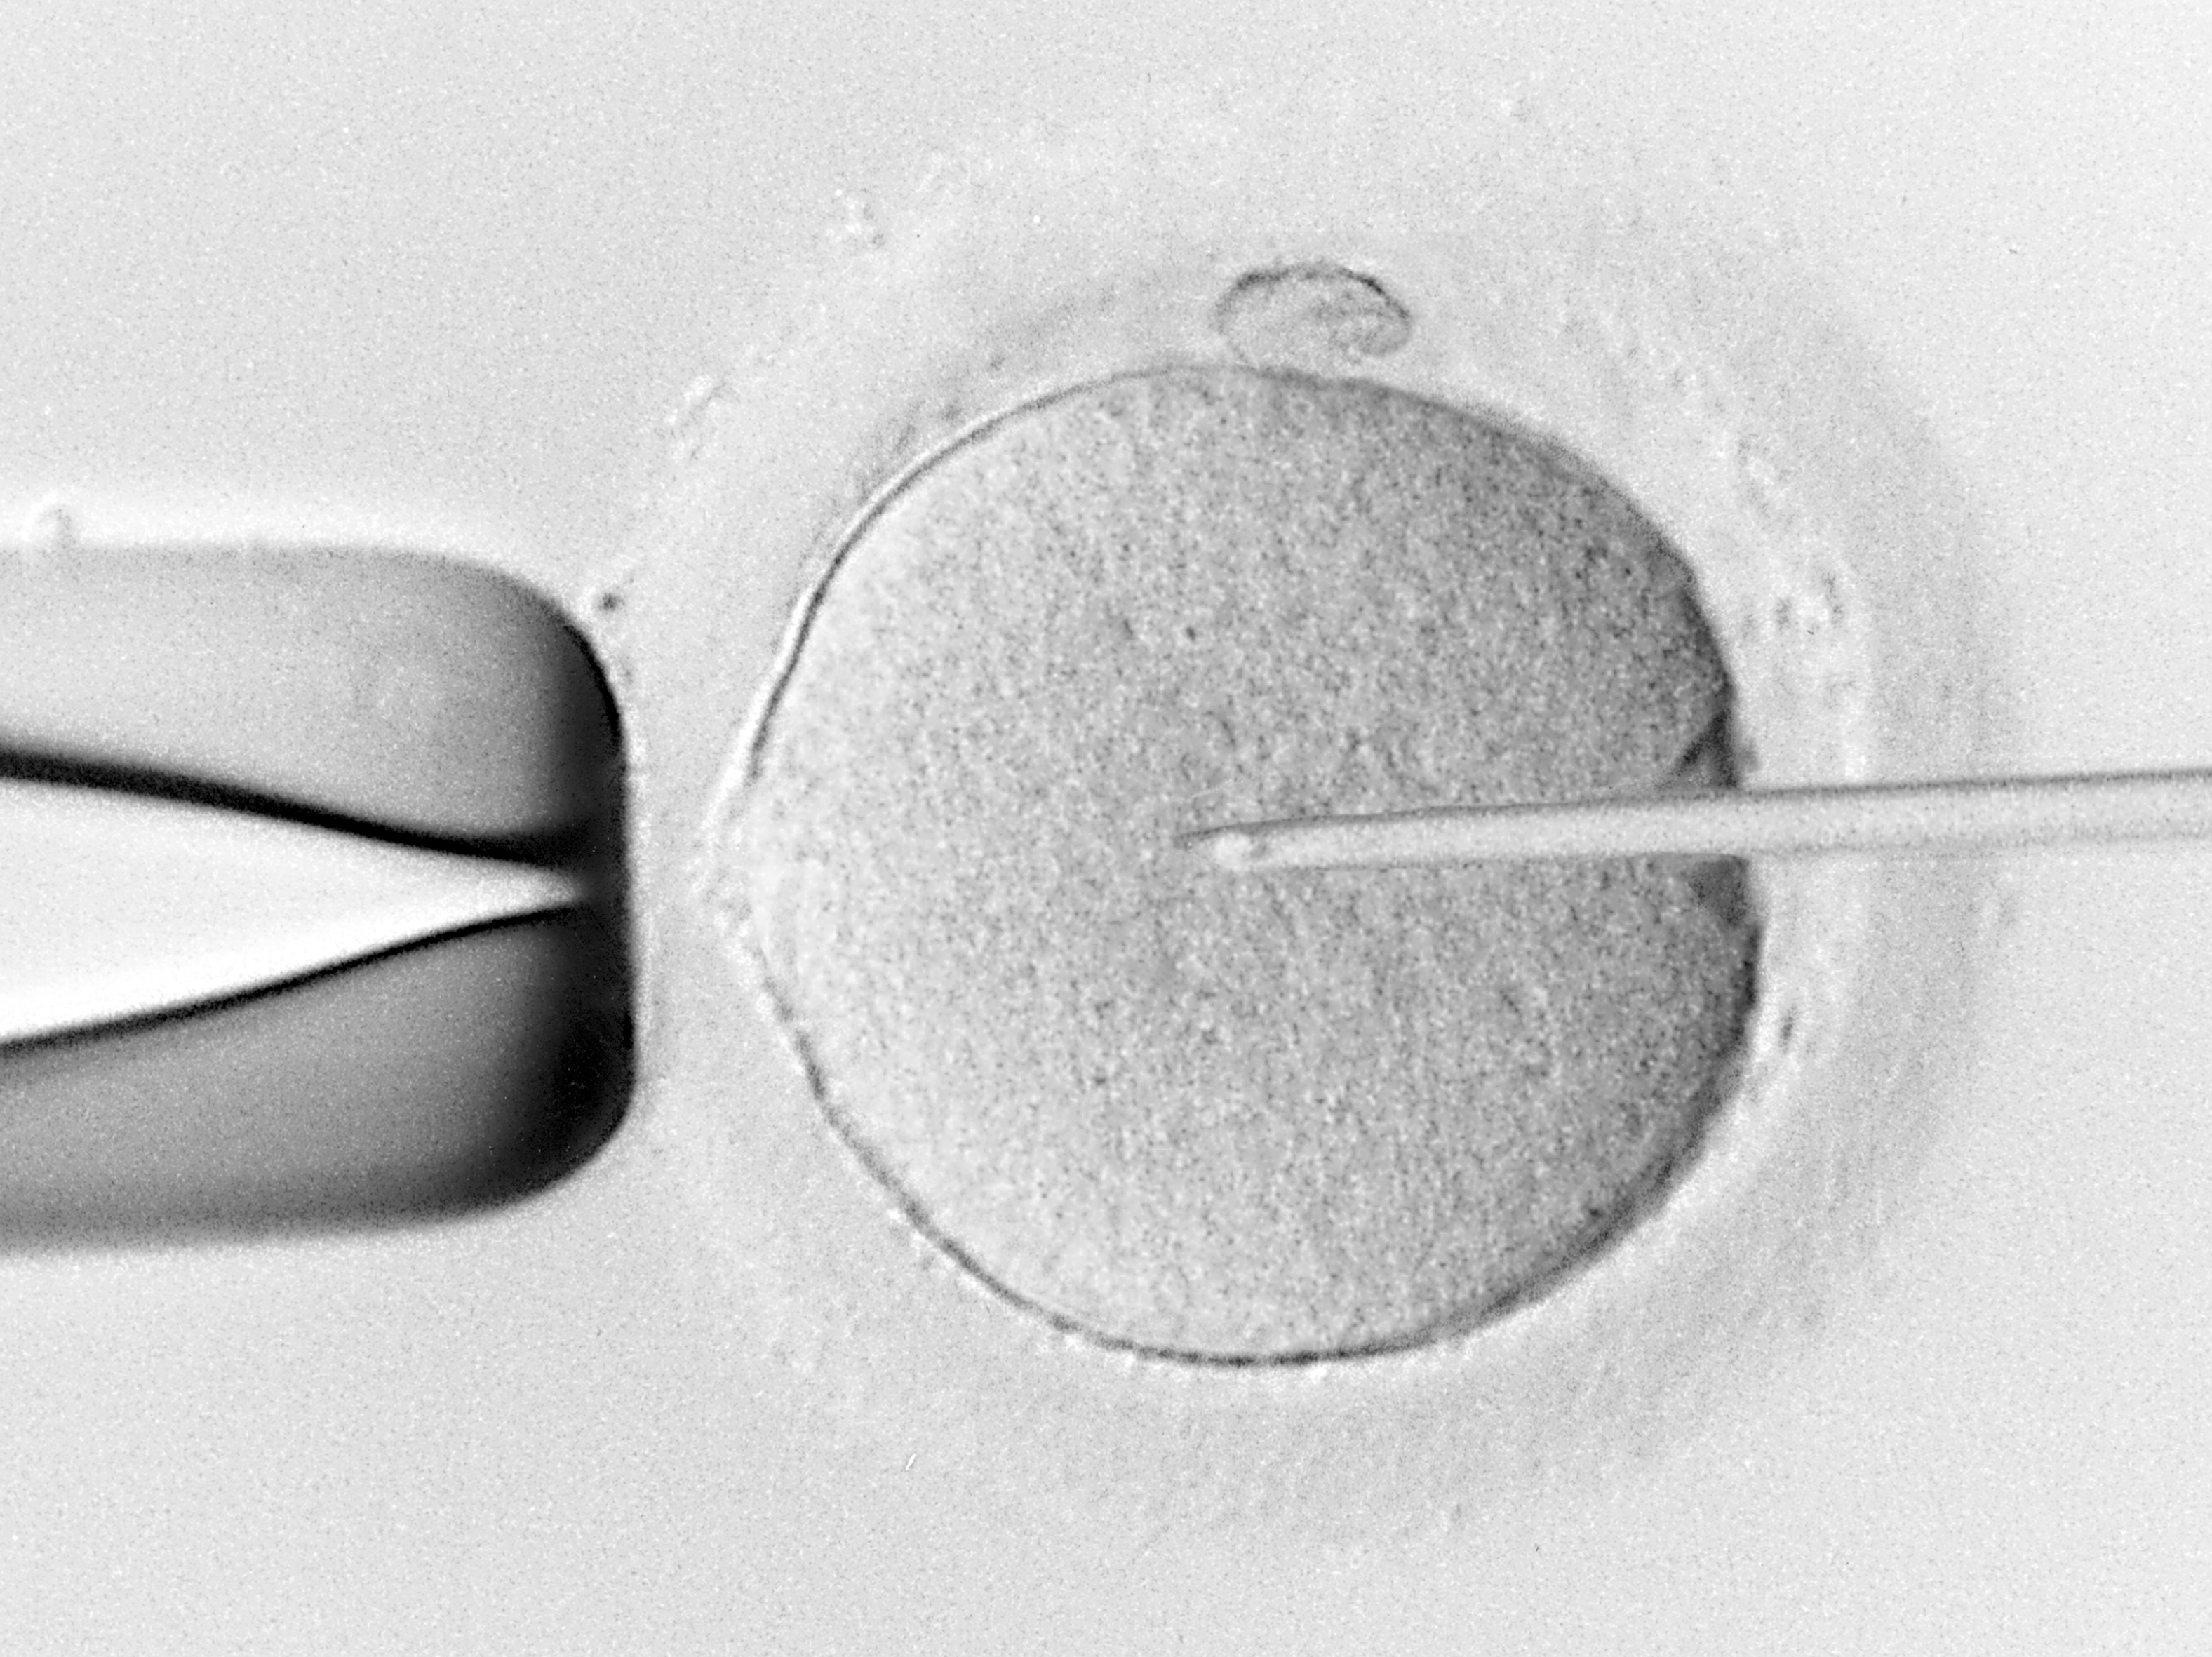 IVF - Eicel - Bevruchting